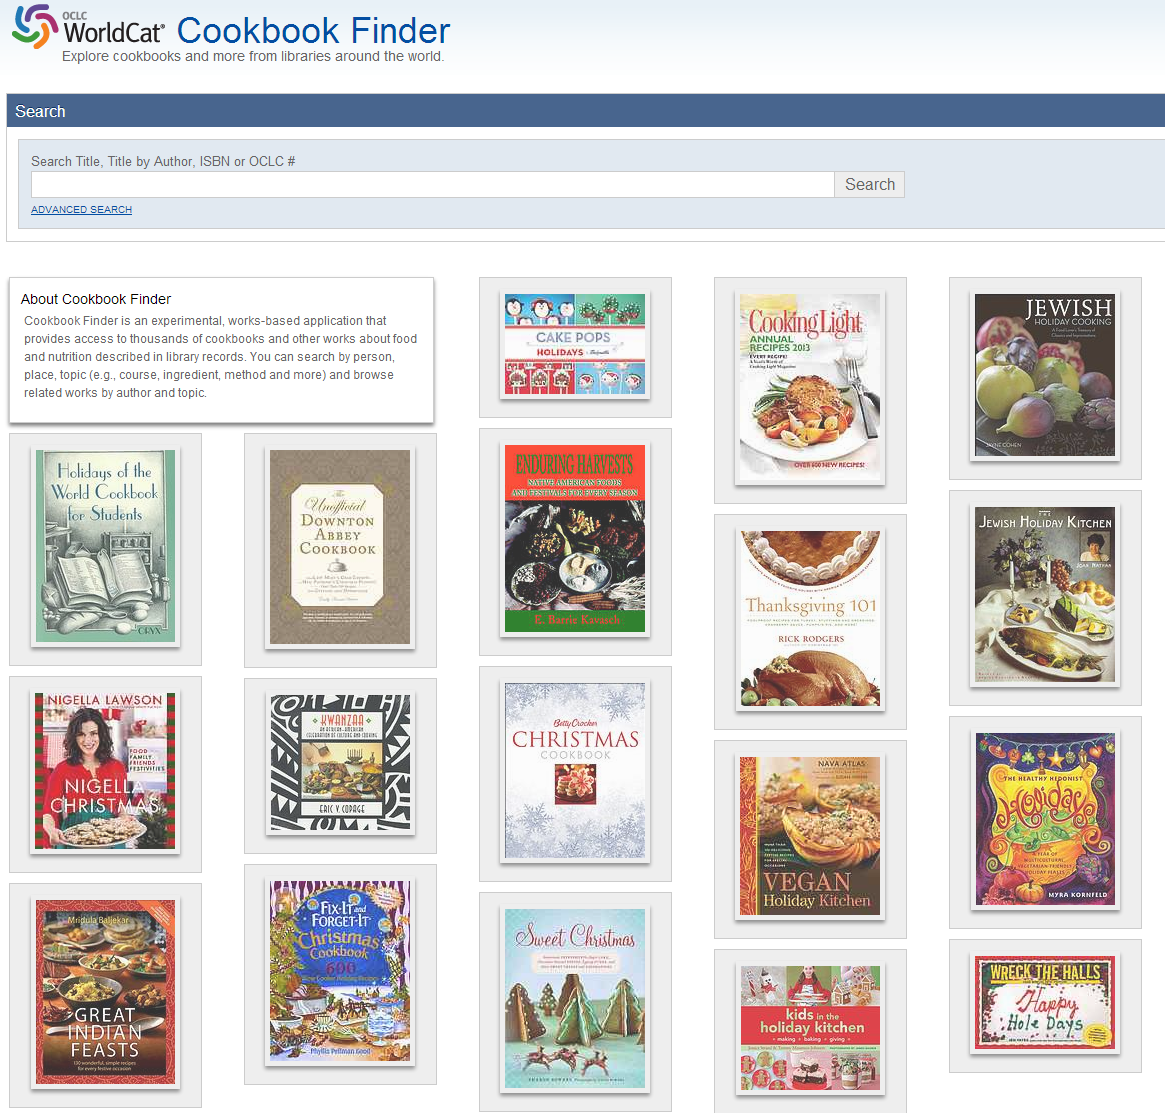 WorldCat Cookbook Finder